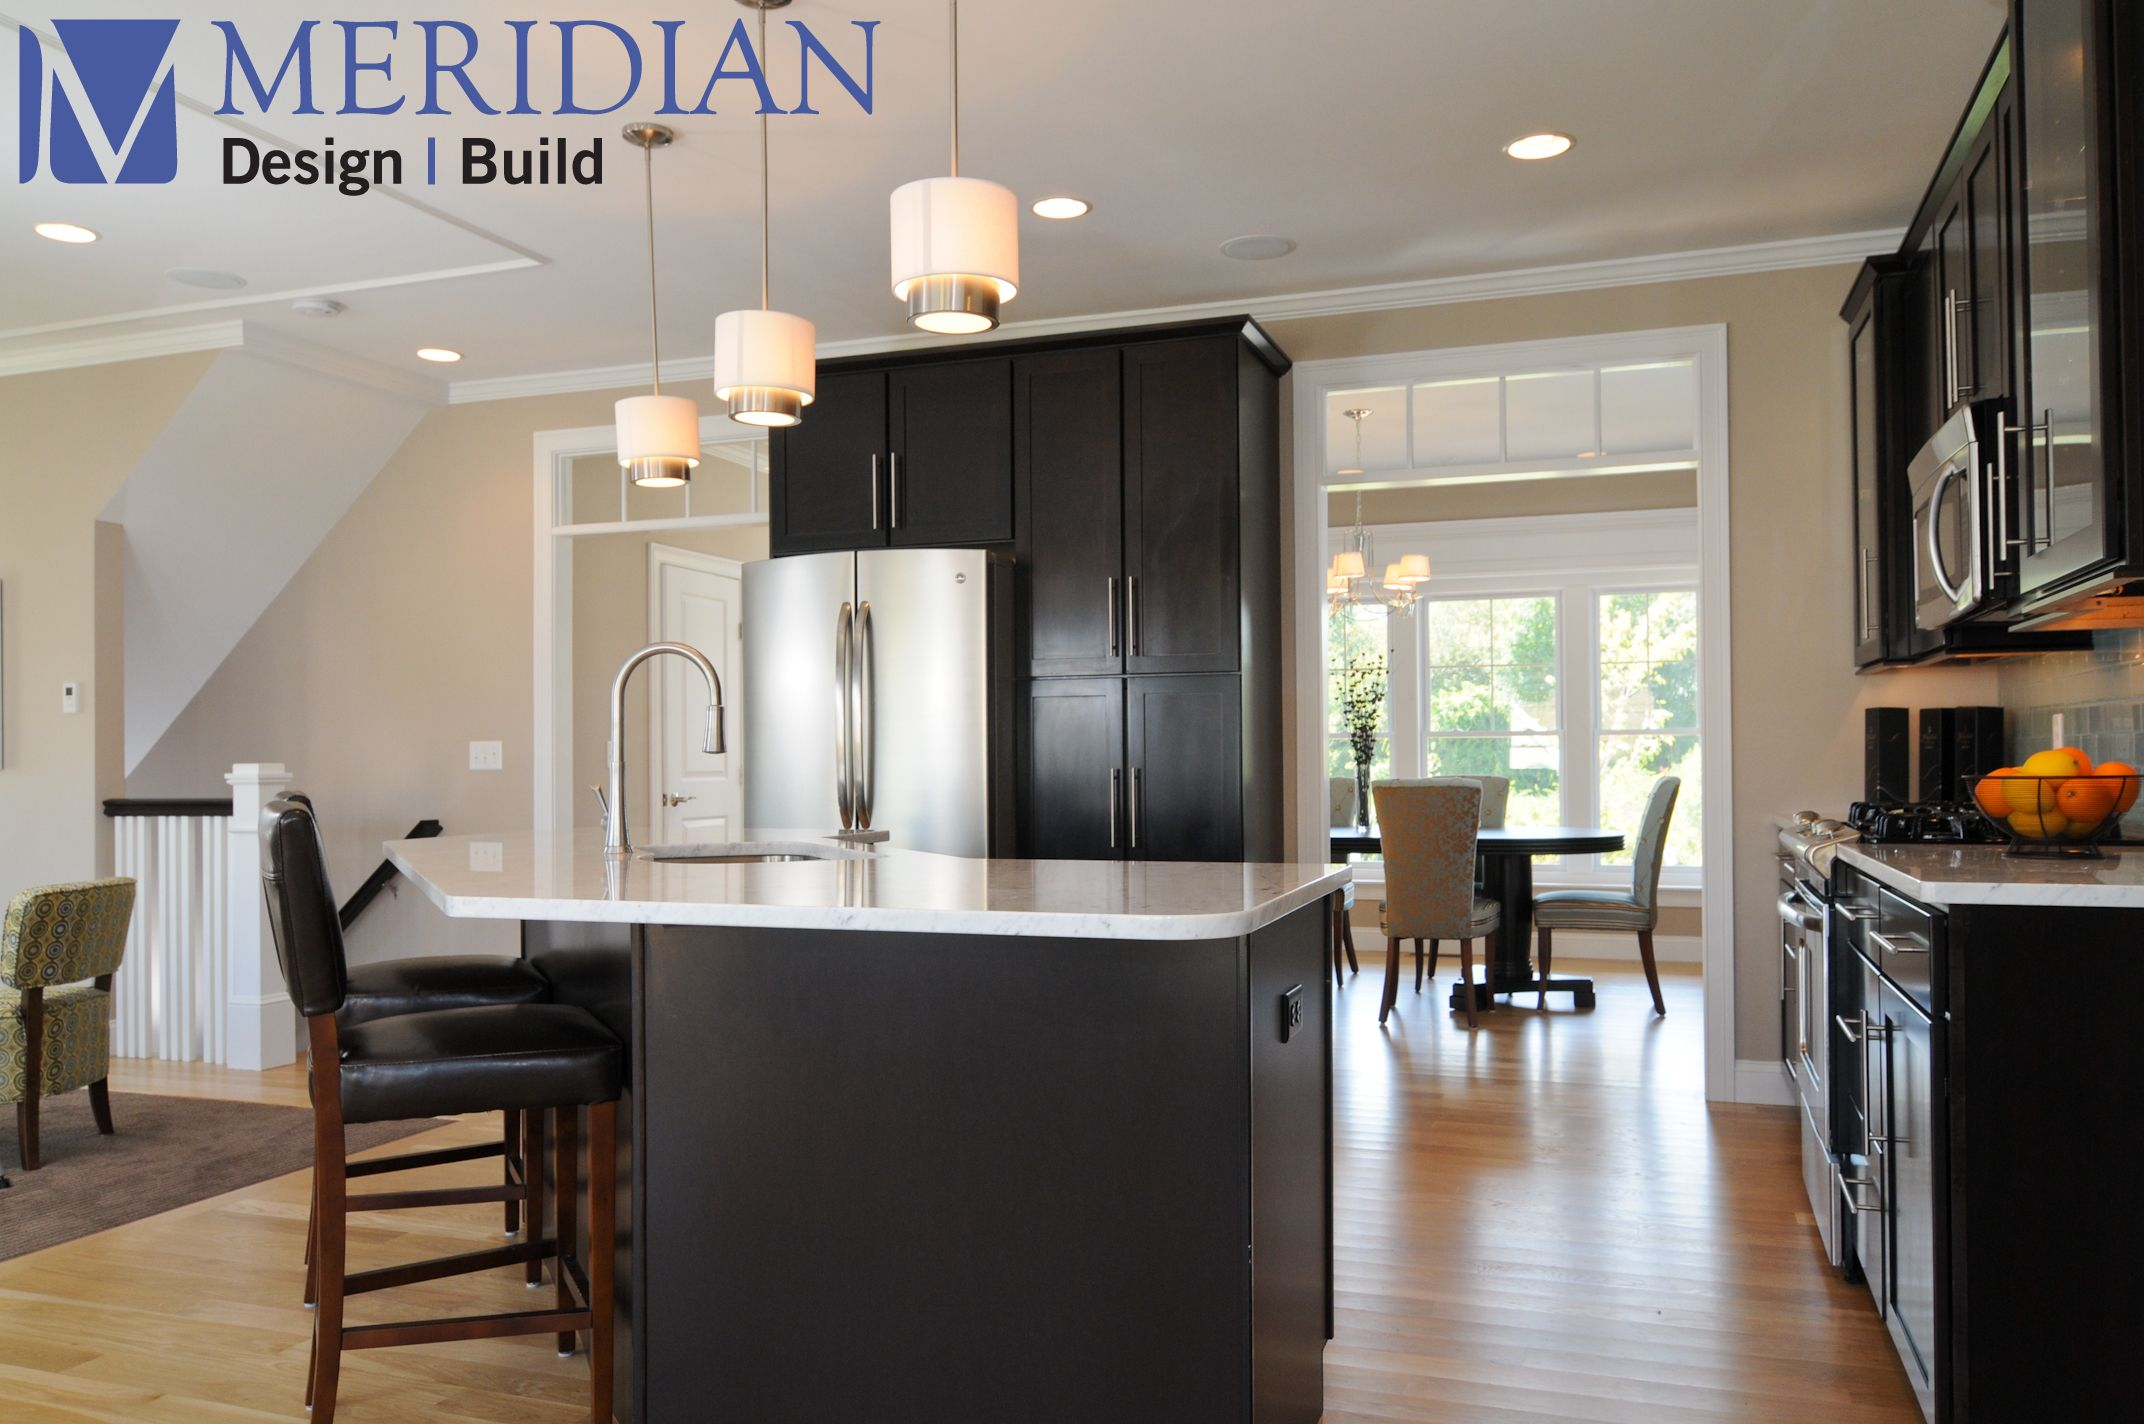 Kitchen Designed By Meridiancustomhomes Com Kitchen Design Kitchen Inspirations House Design